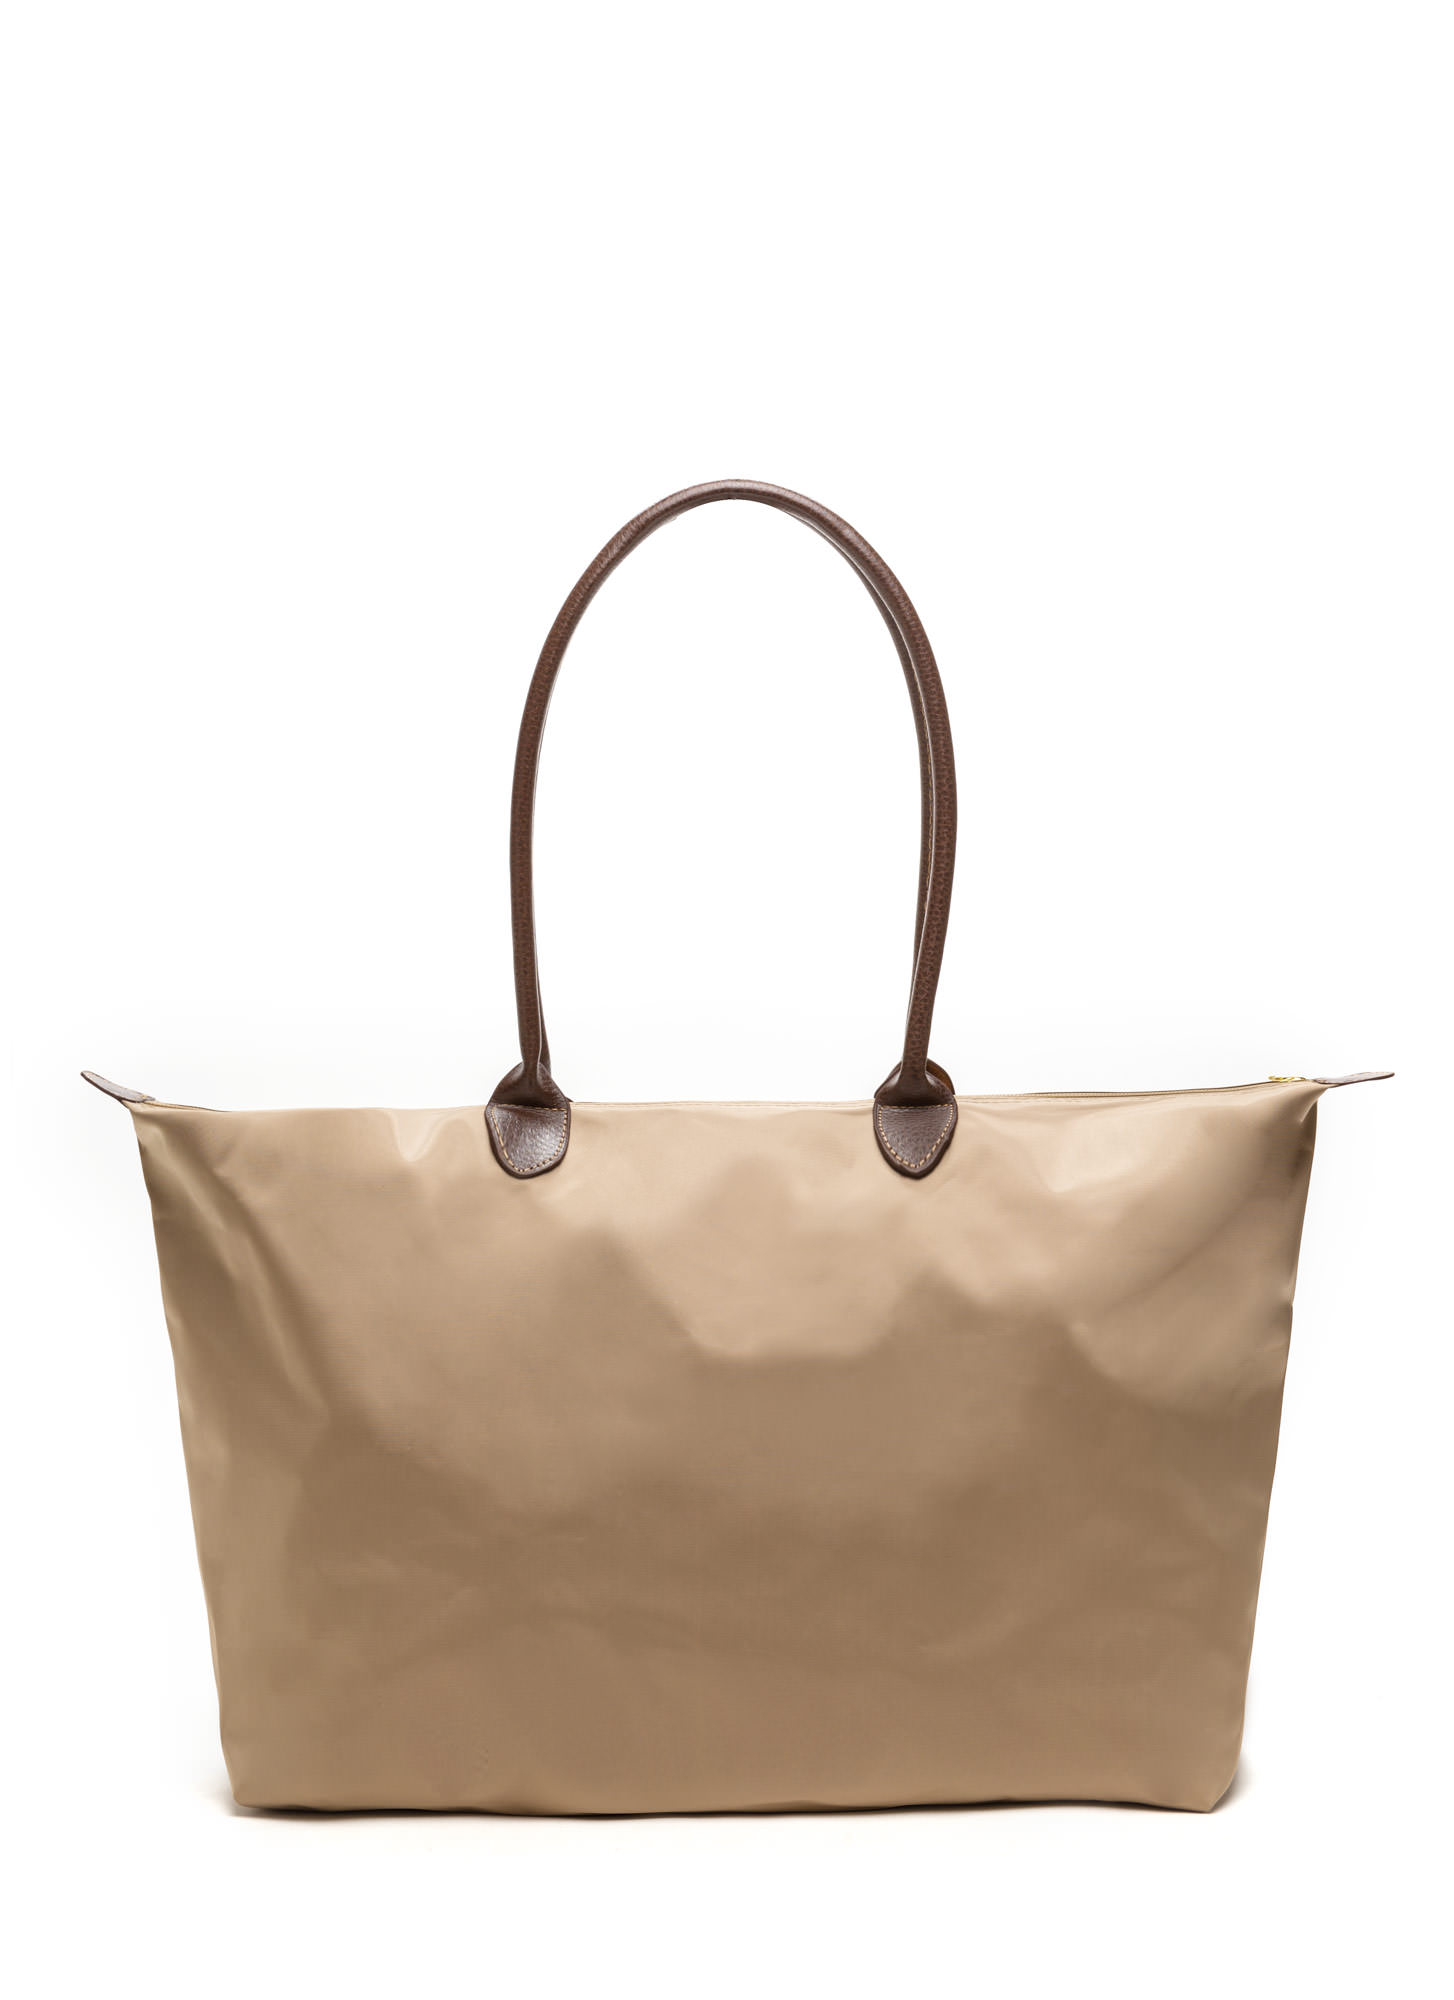 Chic Jetsetter Carryall Tote Bag TAUPE